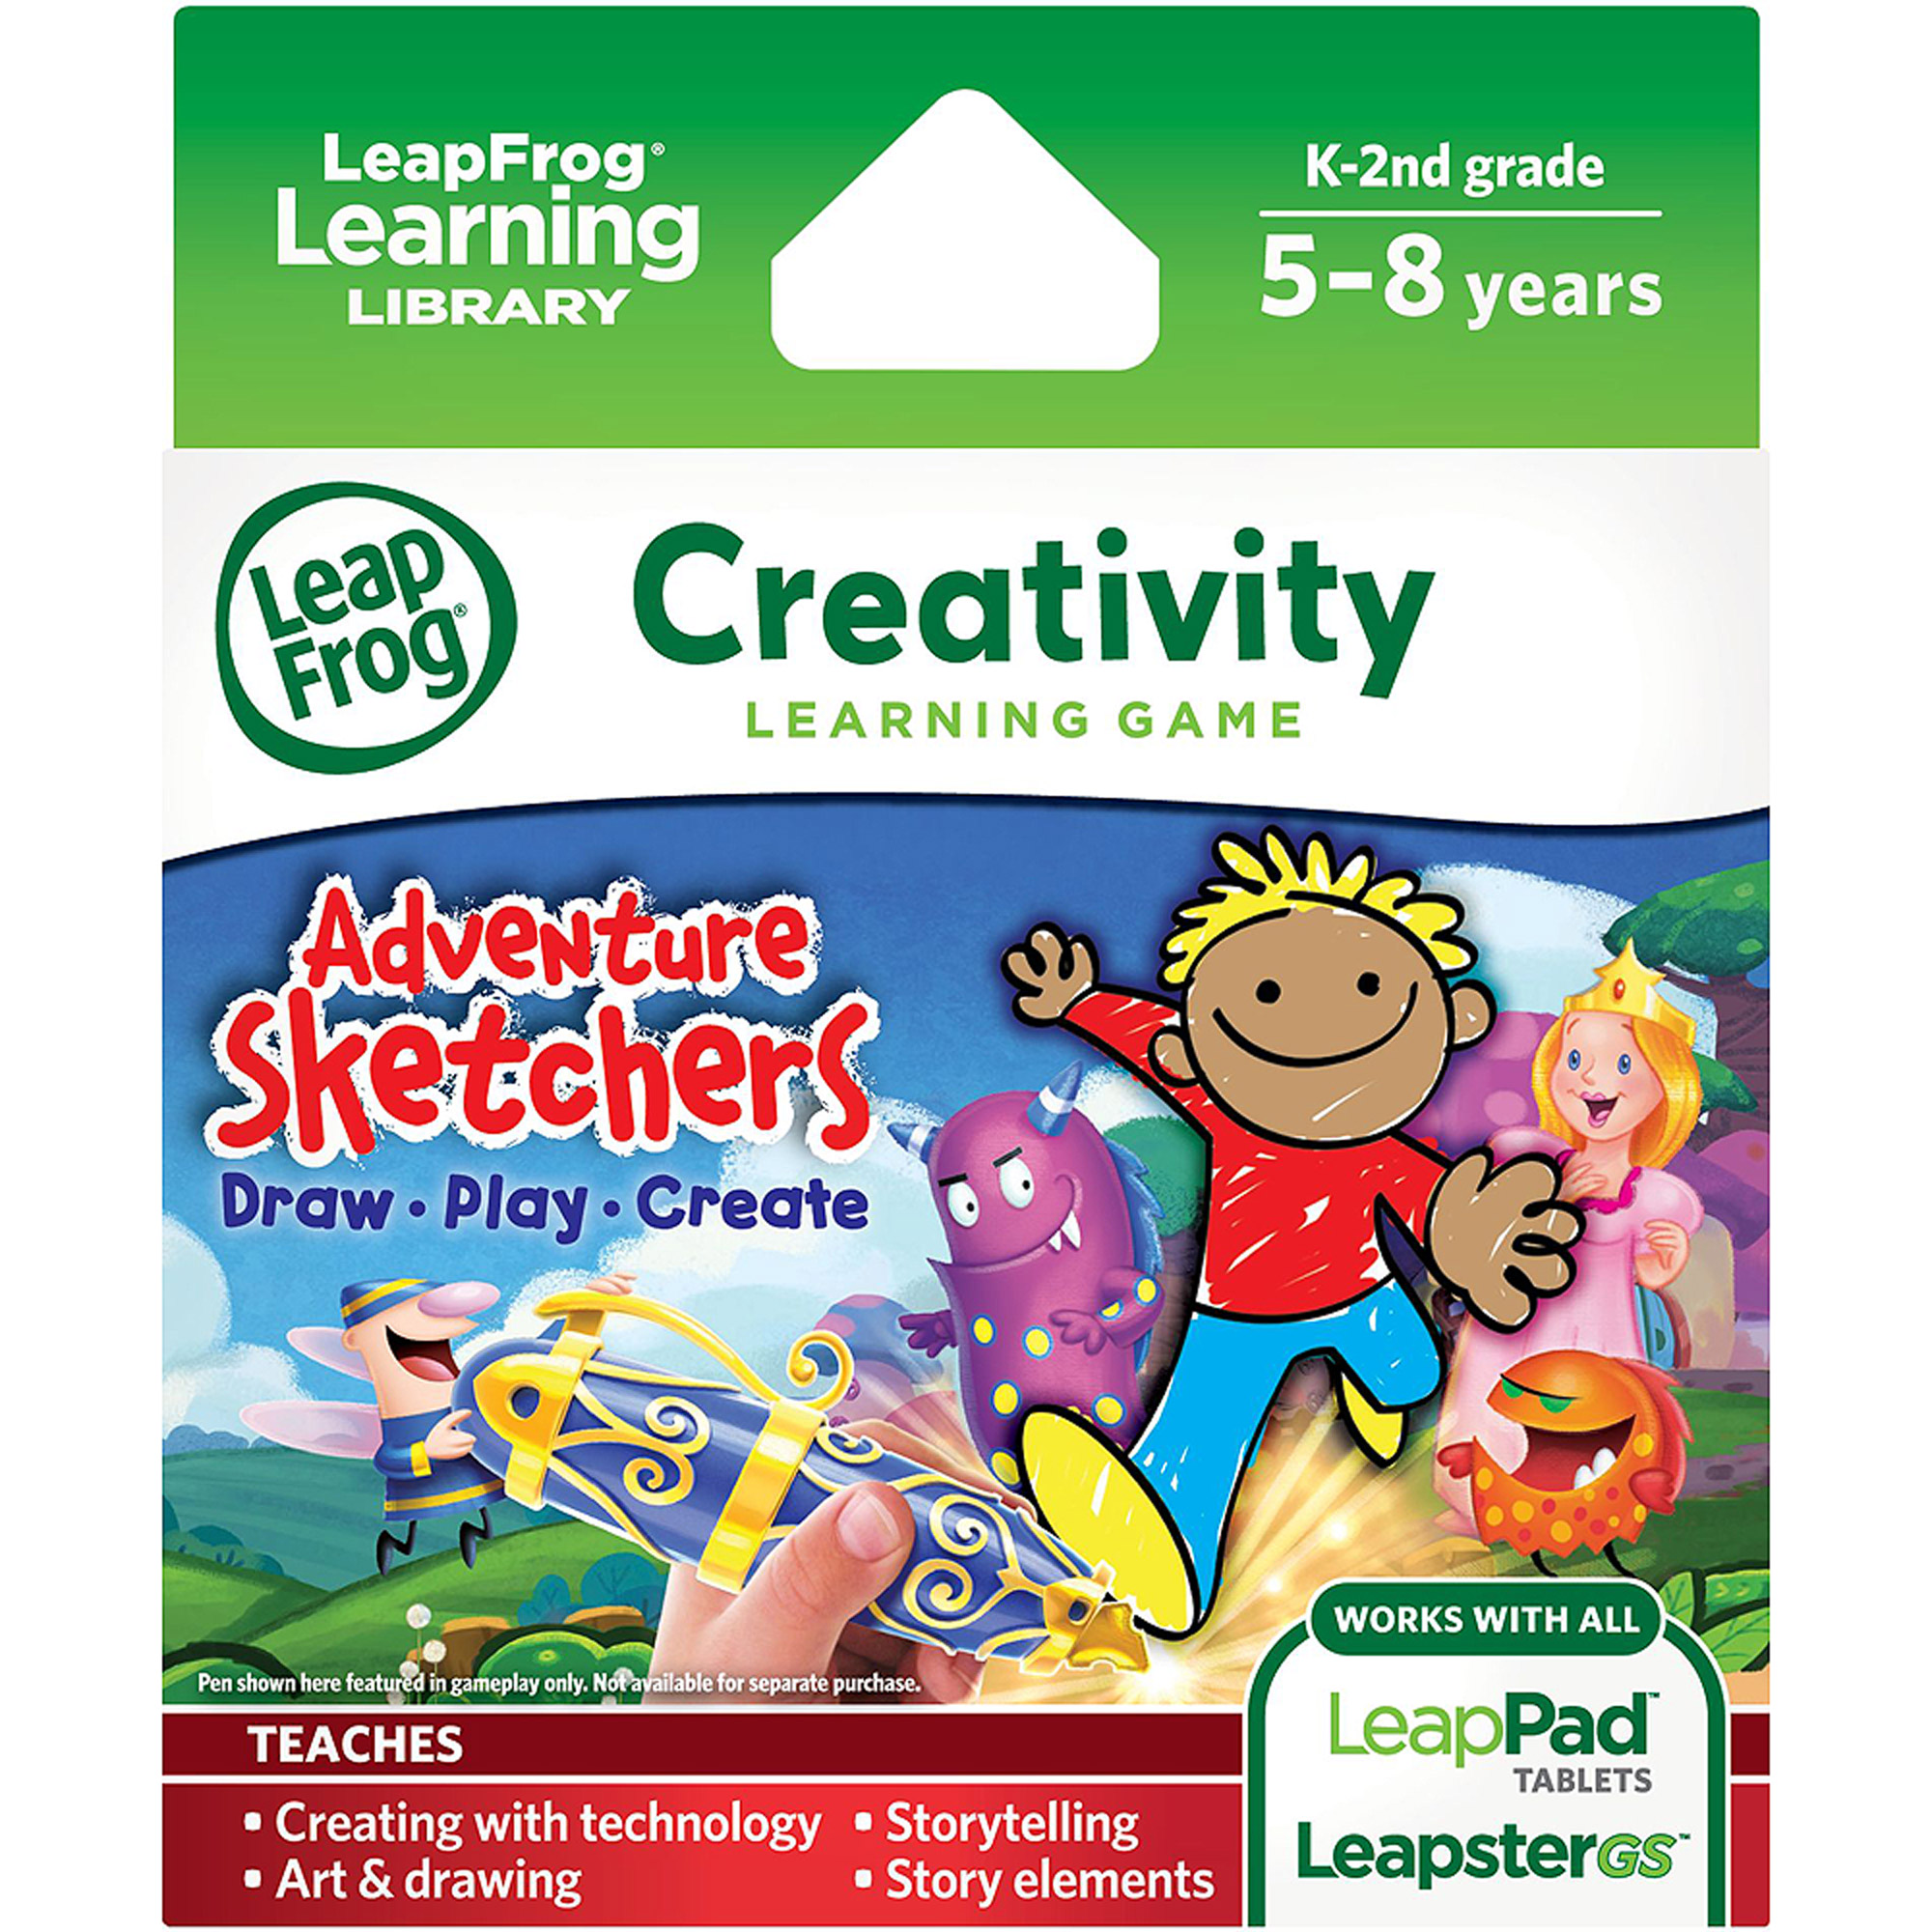 LeapFrog Explorer Learning Game: Adventure Sketchers! Draw, Play, Create